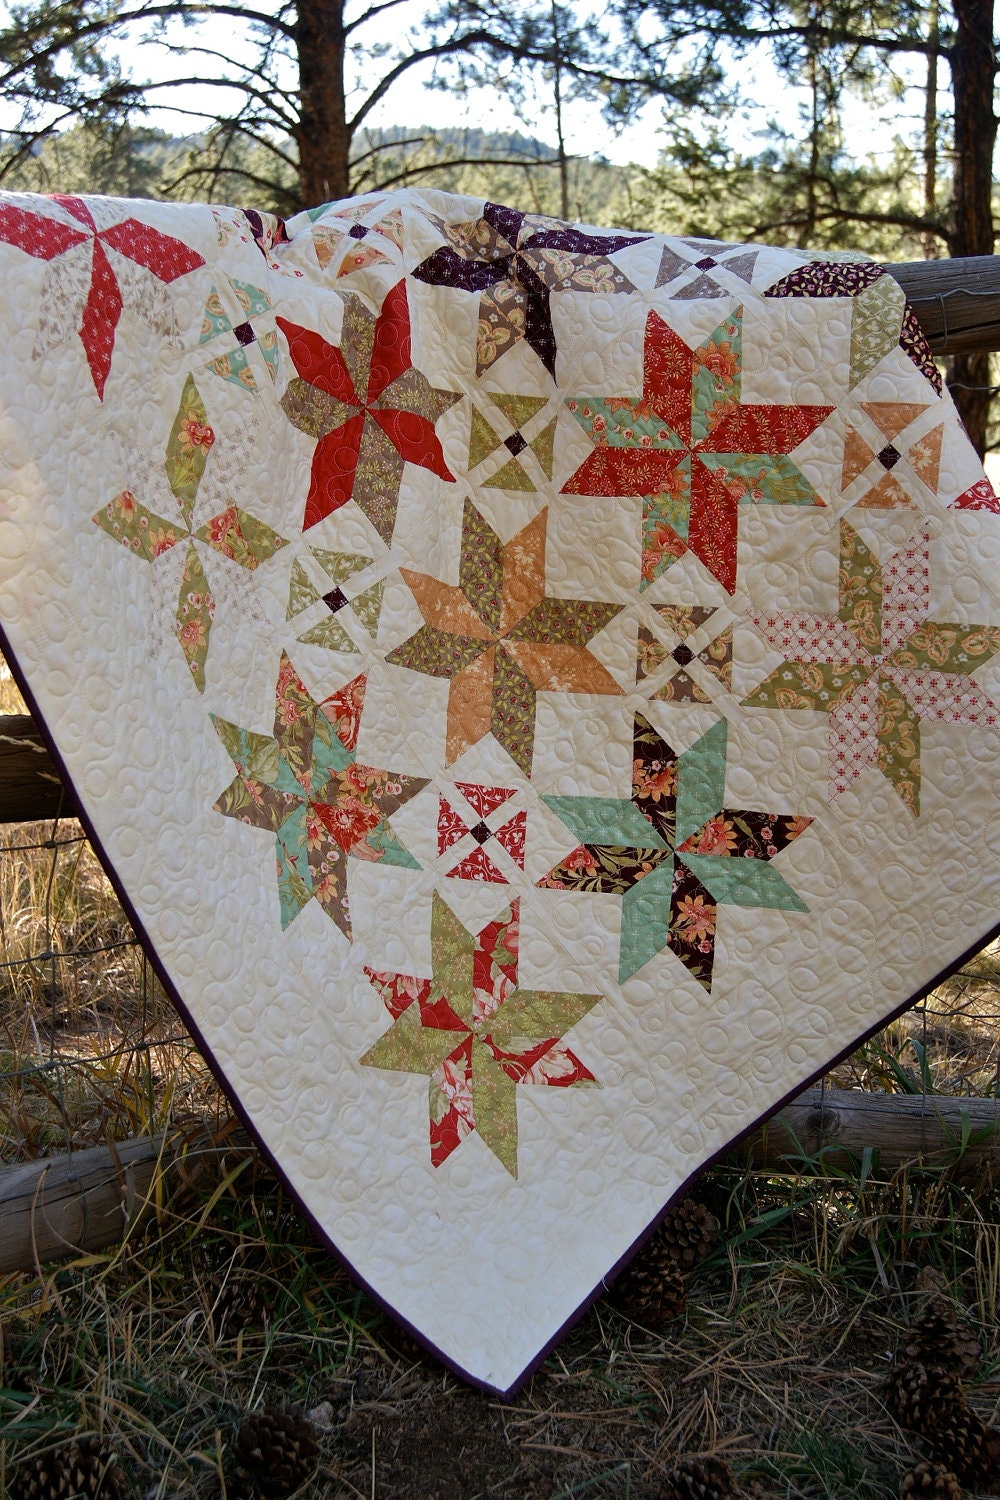 Quilt Patchwork Lap Scrappy Handmade Tapestry Fabrics By Moda